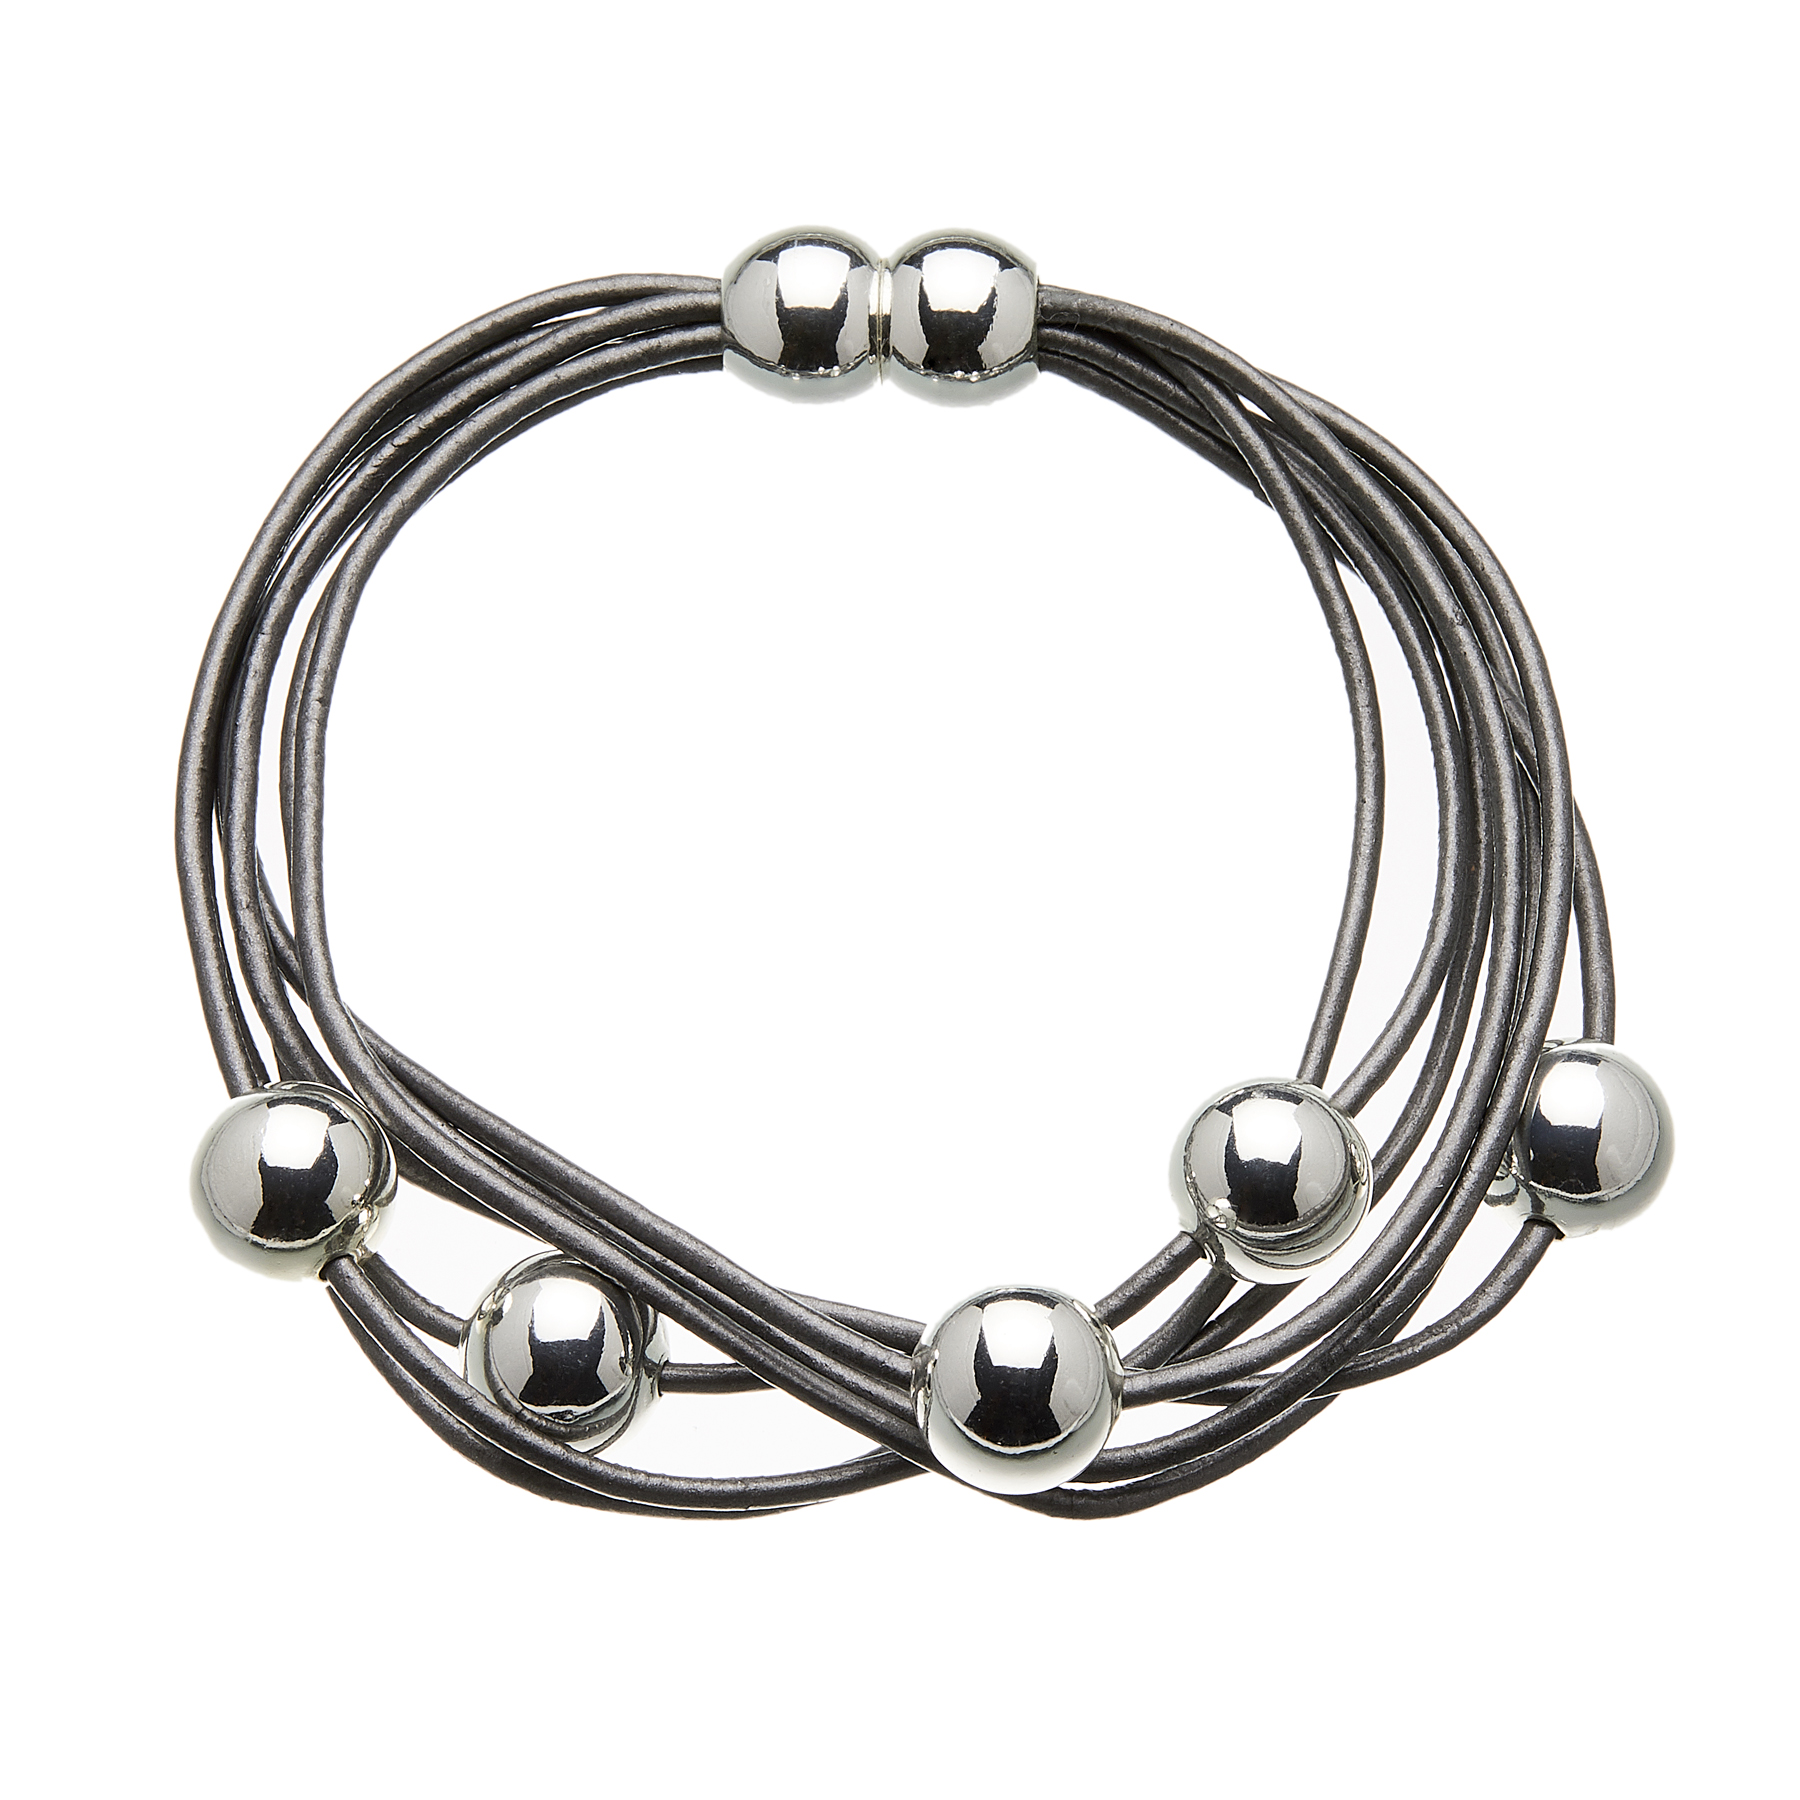 Bracelet with dark grey leather strands and sliding silver beads - Rita B